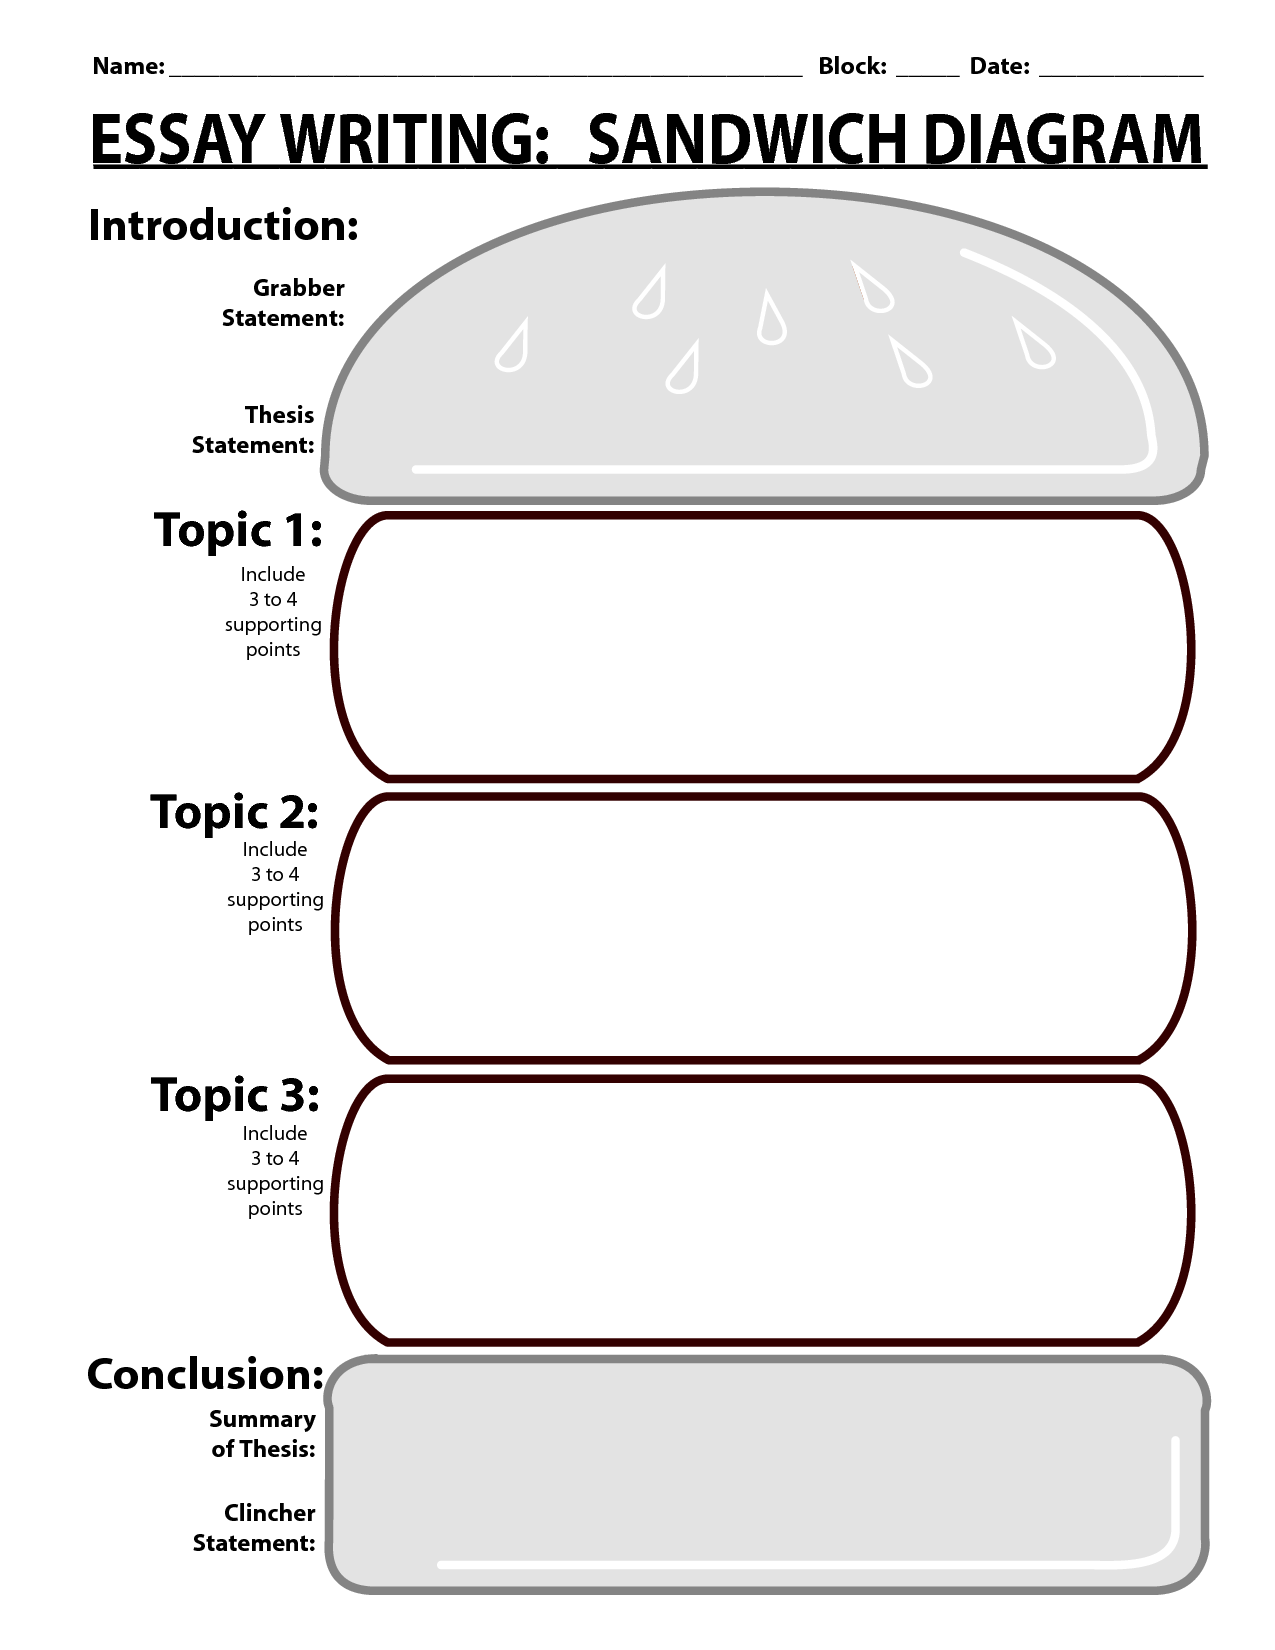 Sandwich Writing Template | ESSAY WRITING SANDWICH DIAGRAM   PDF